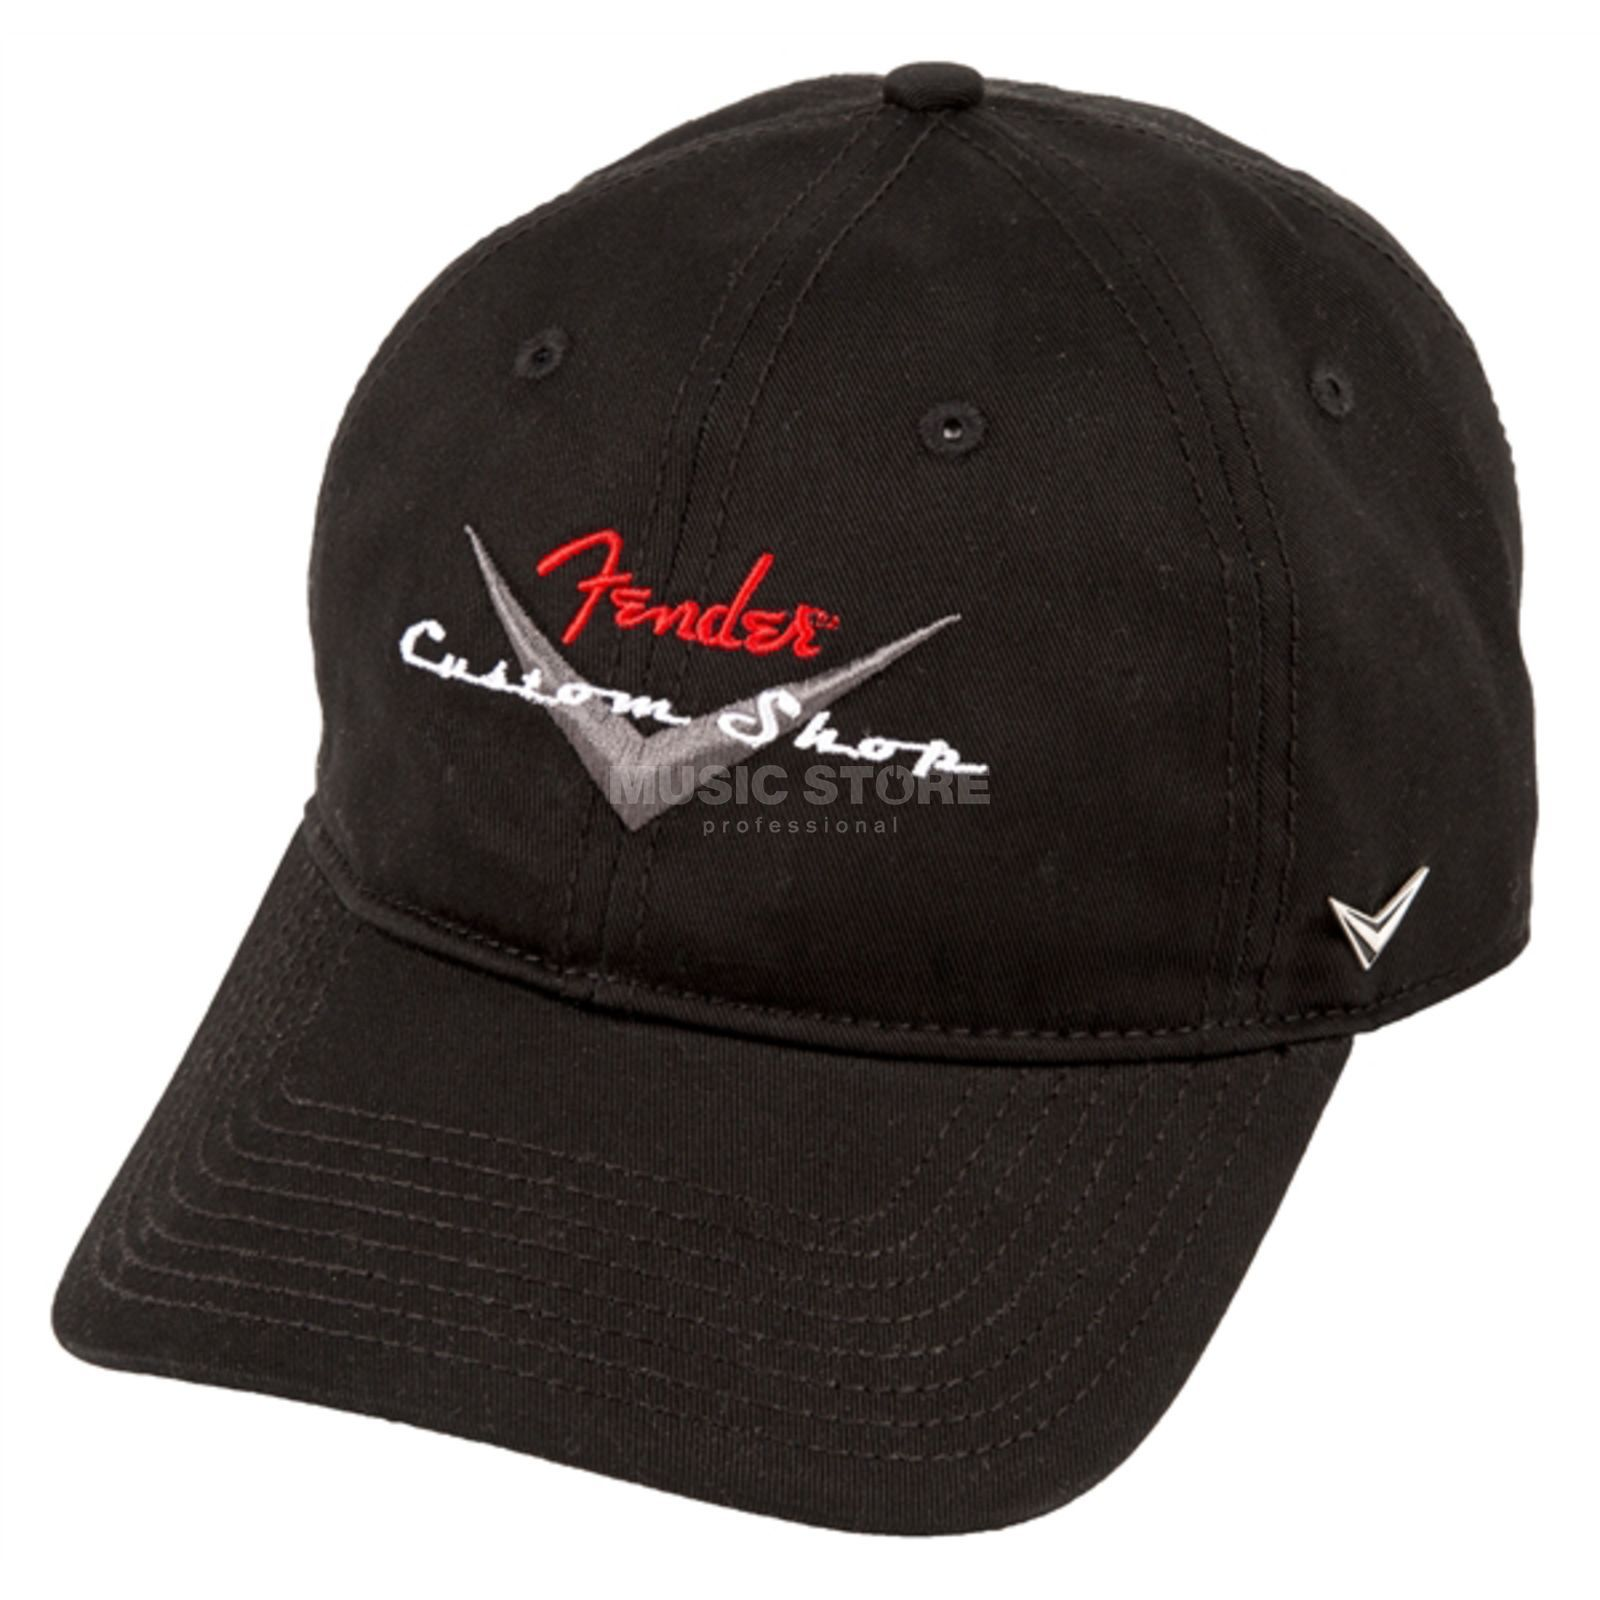 Fender Custom Shop Baseball Hat Black Produktbild